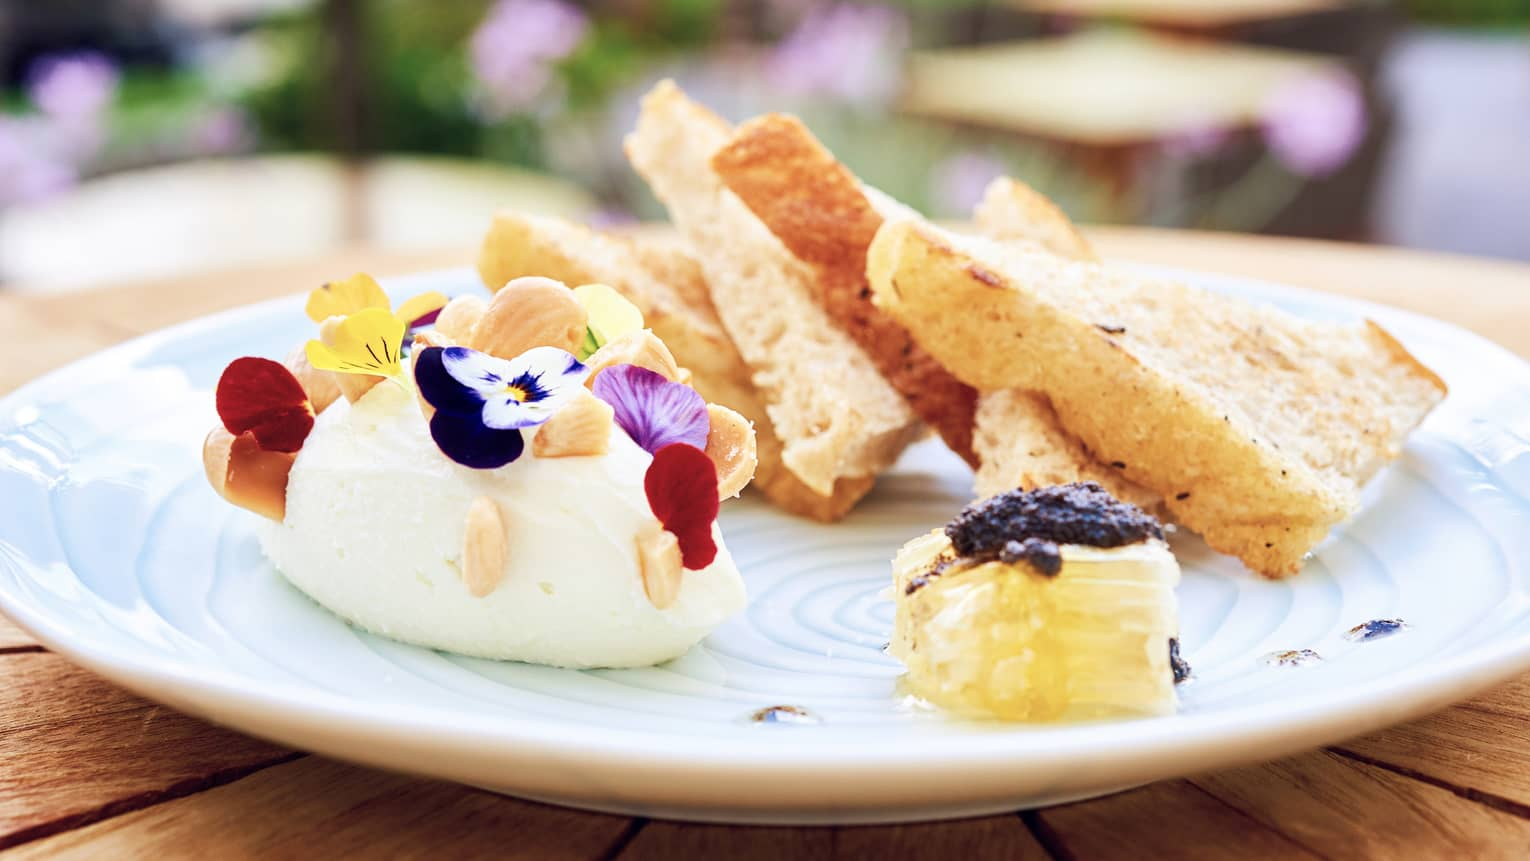 Whipped ricotta on plate with edible flower garnish, honeycomb, toast